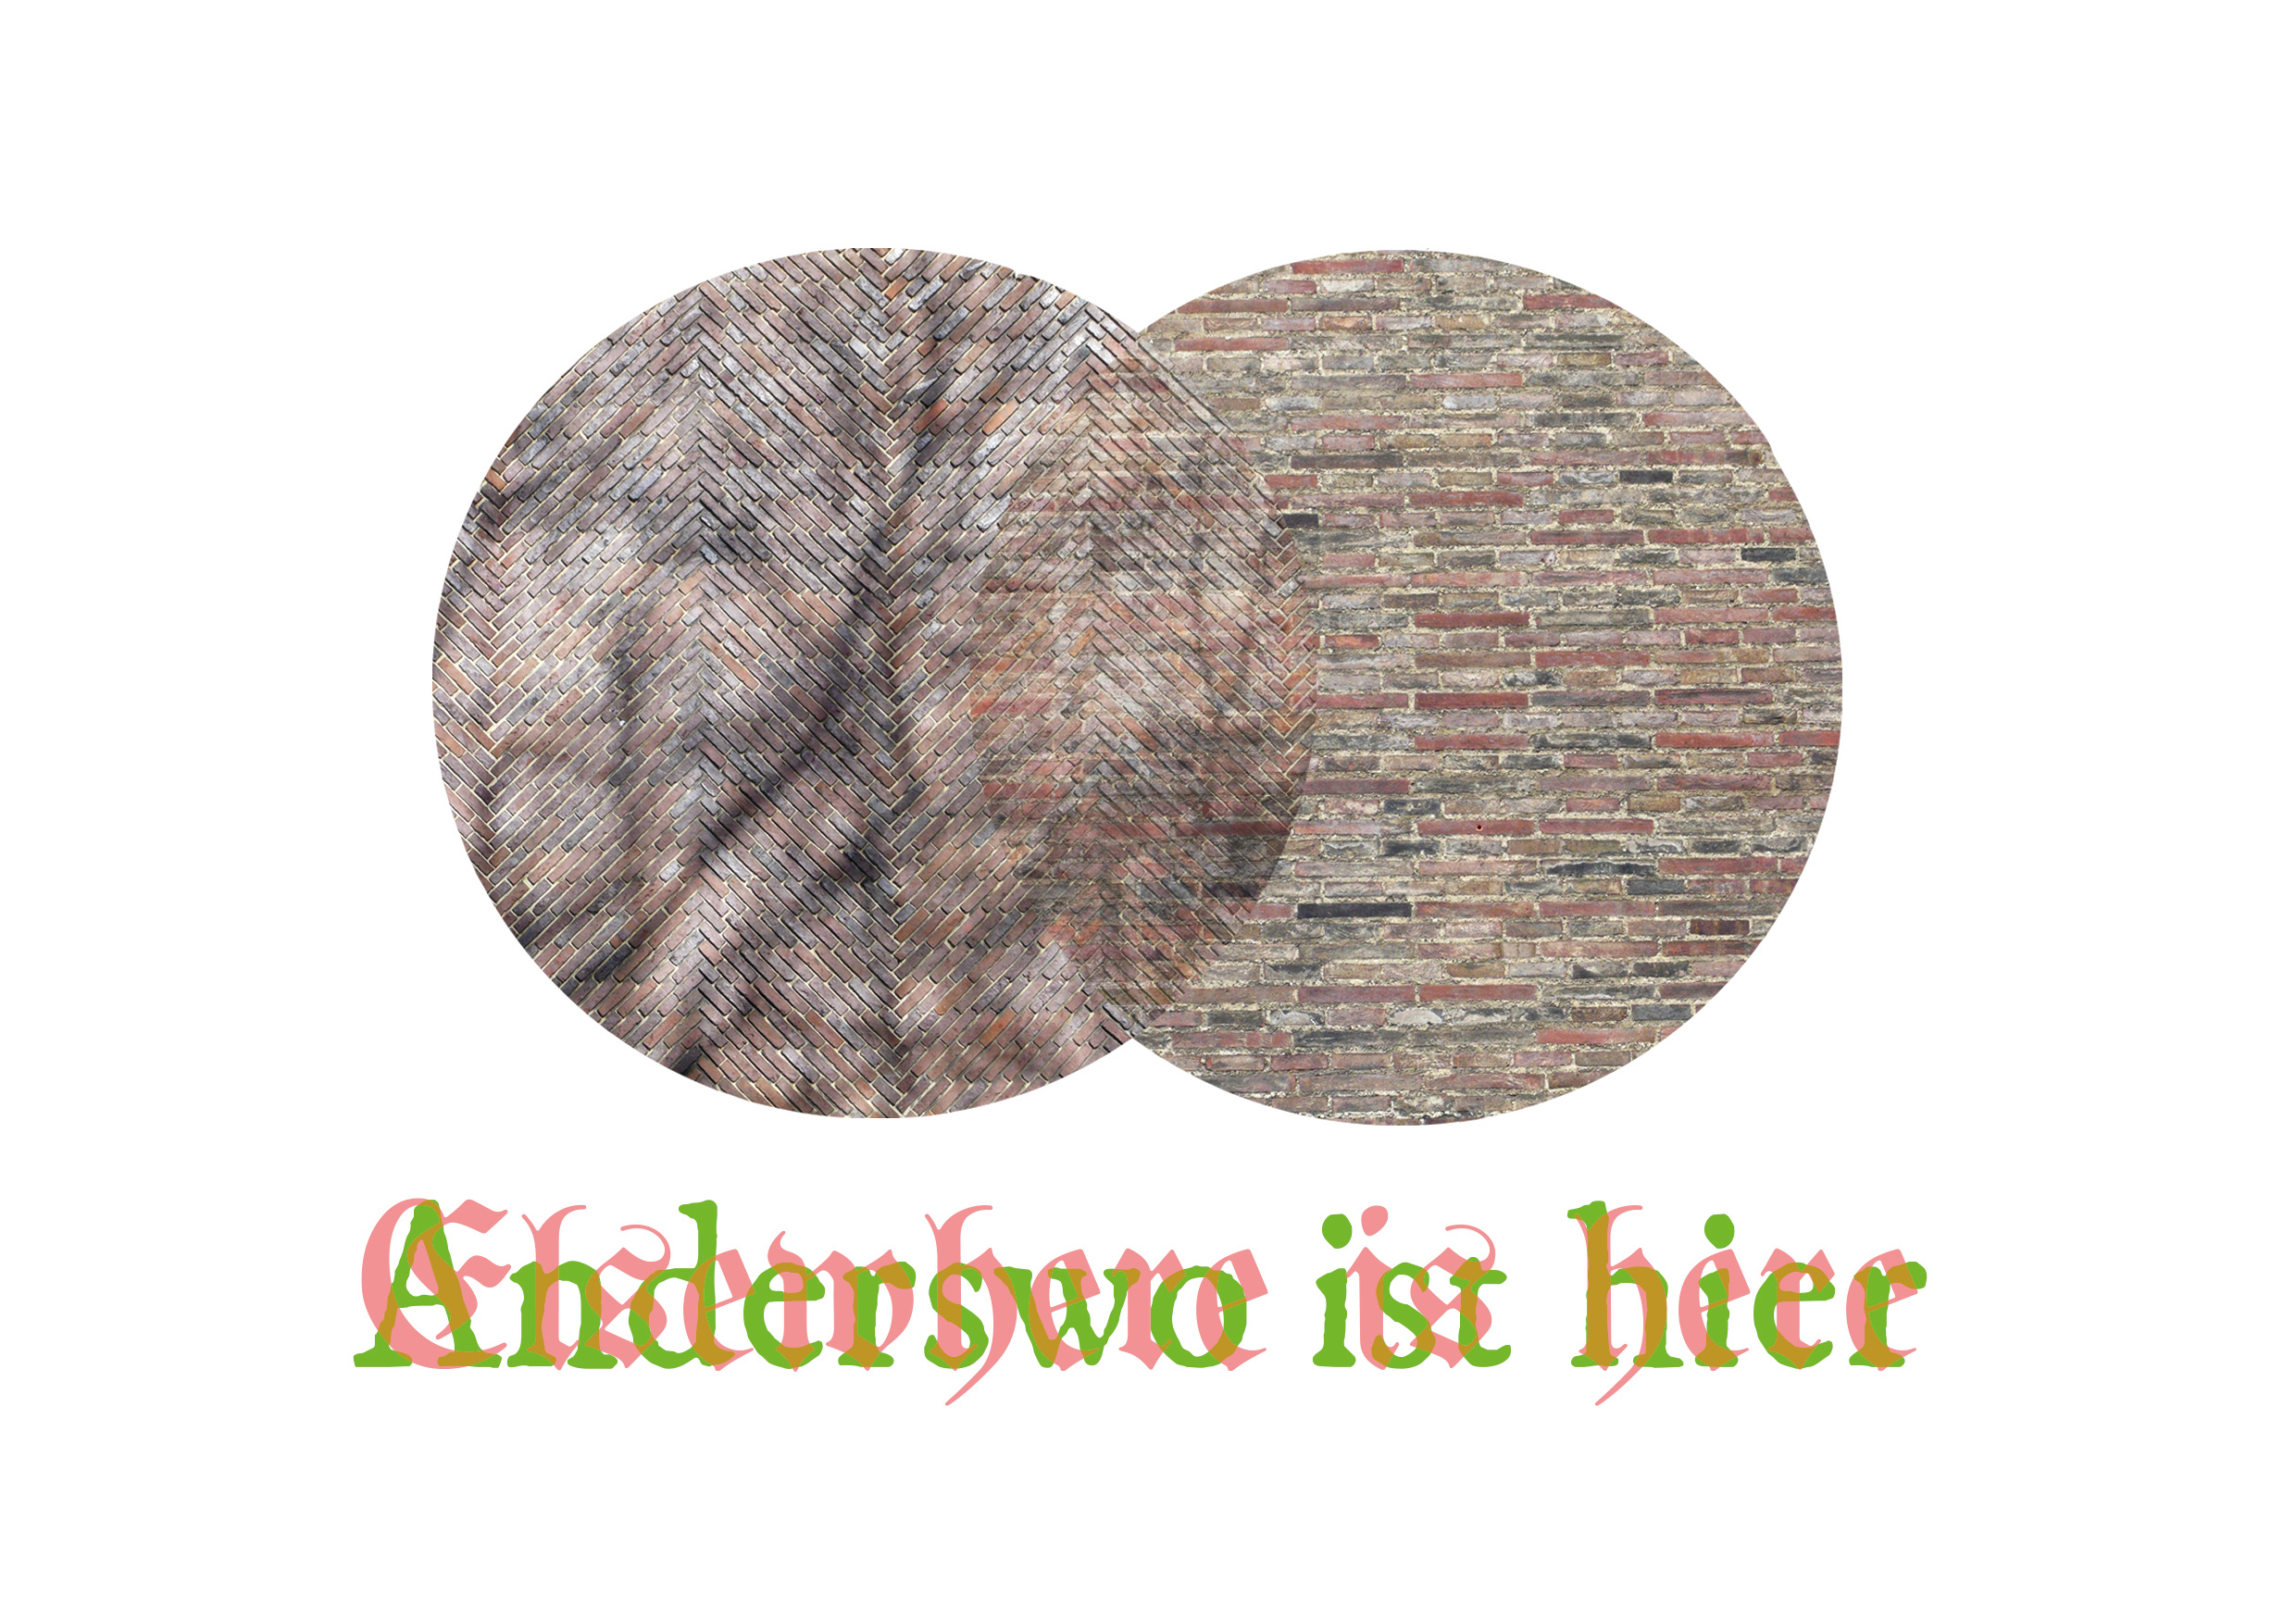 Elsewhere is here : Anderswo ist hie